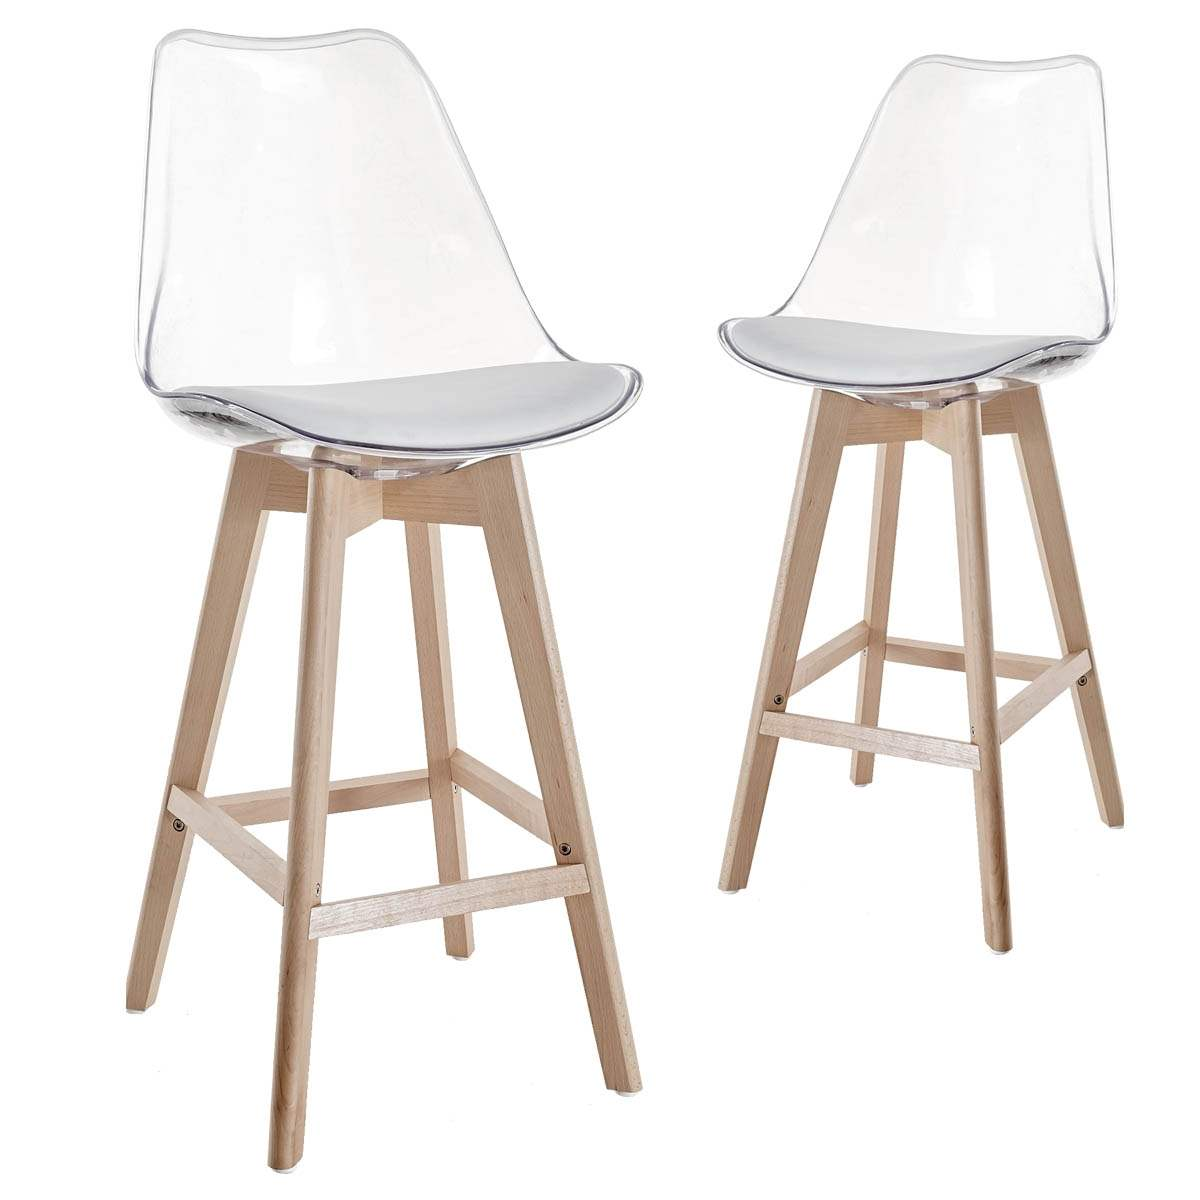 Charly Lot De 2 Tabourets De Bar Blancs Deco In Paris Lot De 2 Tabourets De Bar Scandinaves